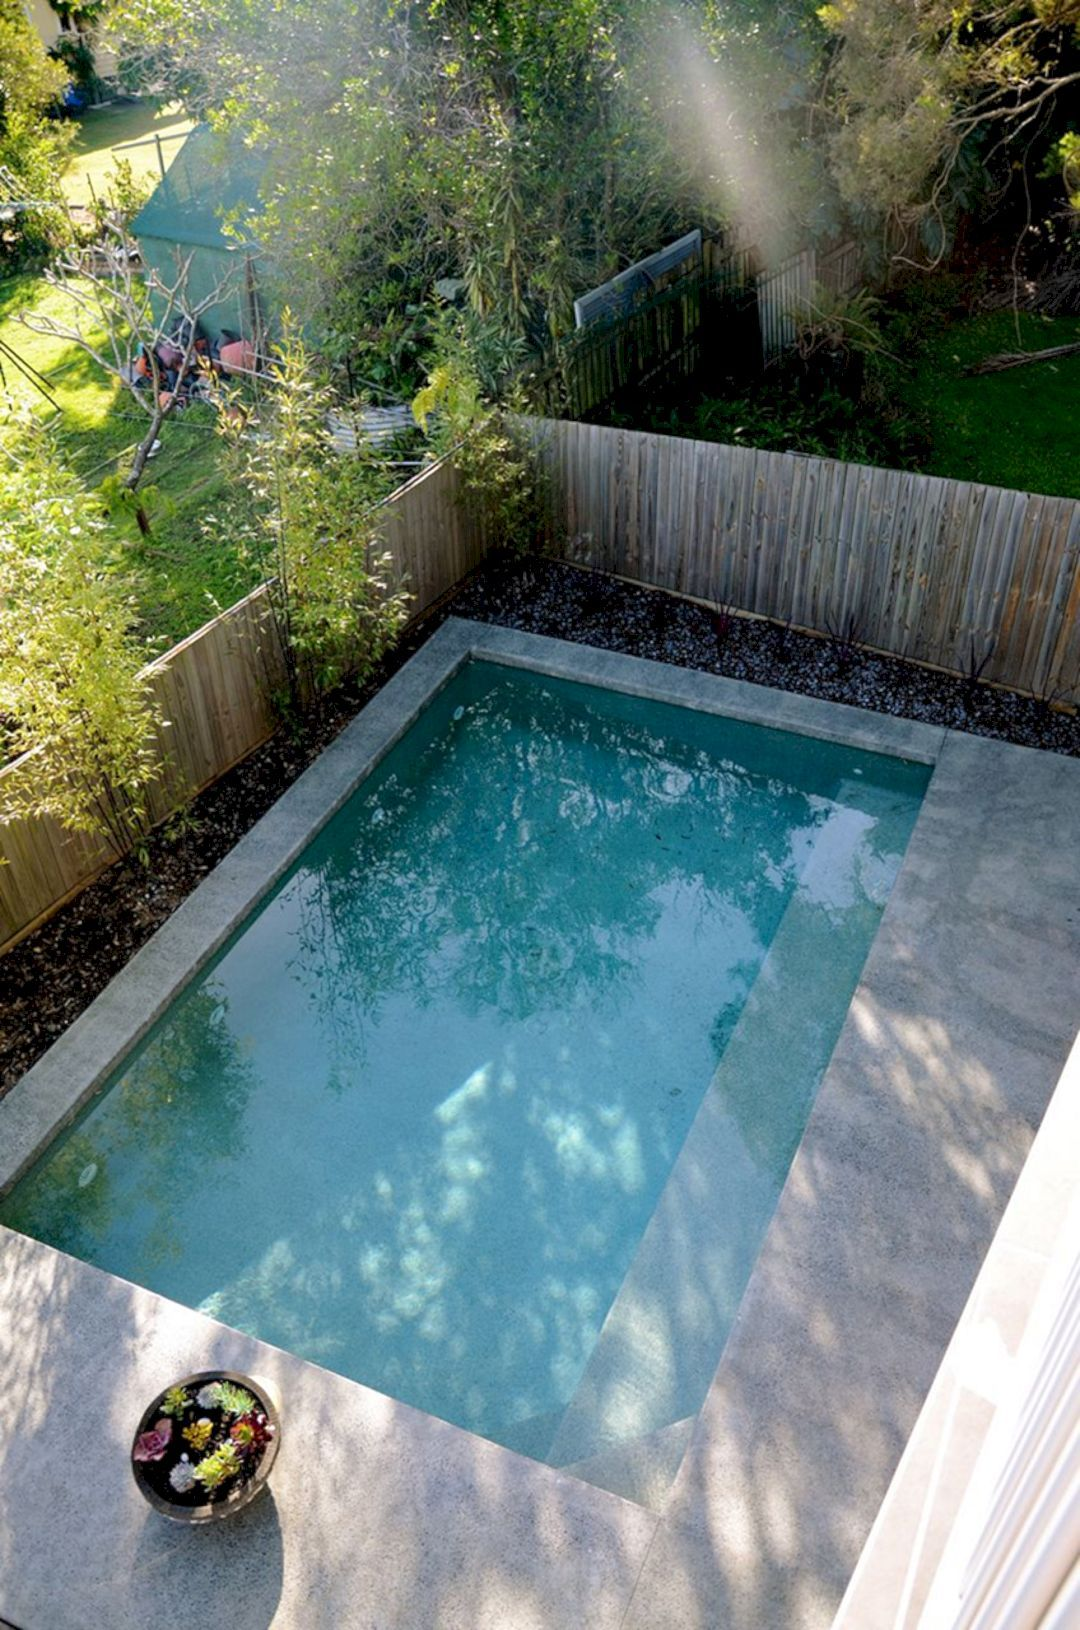 Coolest Small Pool Ideas With 9 Basic Preparation Tips Futurist Architecture Small Pool Design Swimming Pools Backyard Pool Landscaping